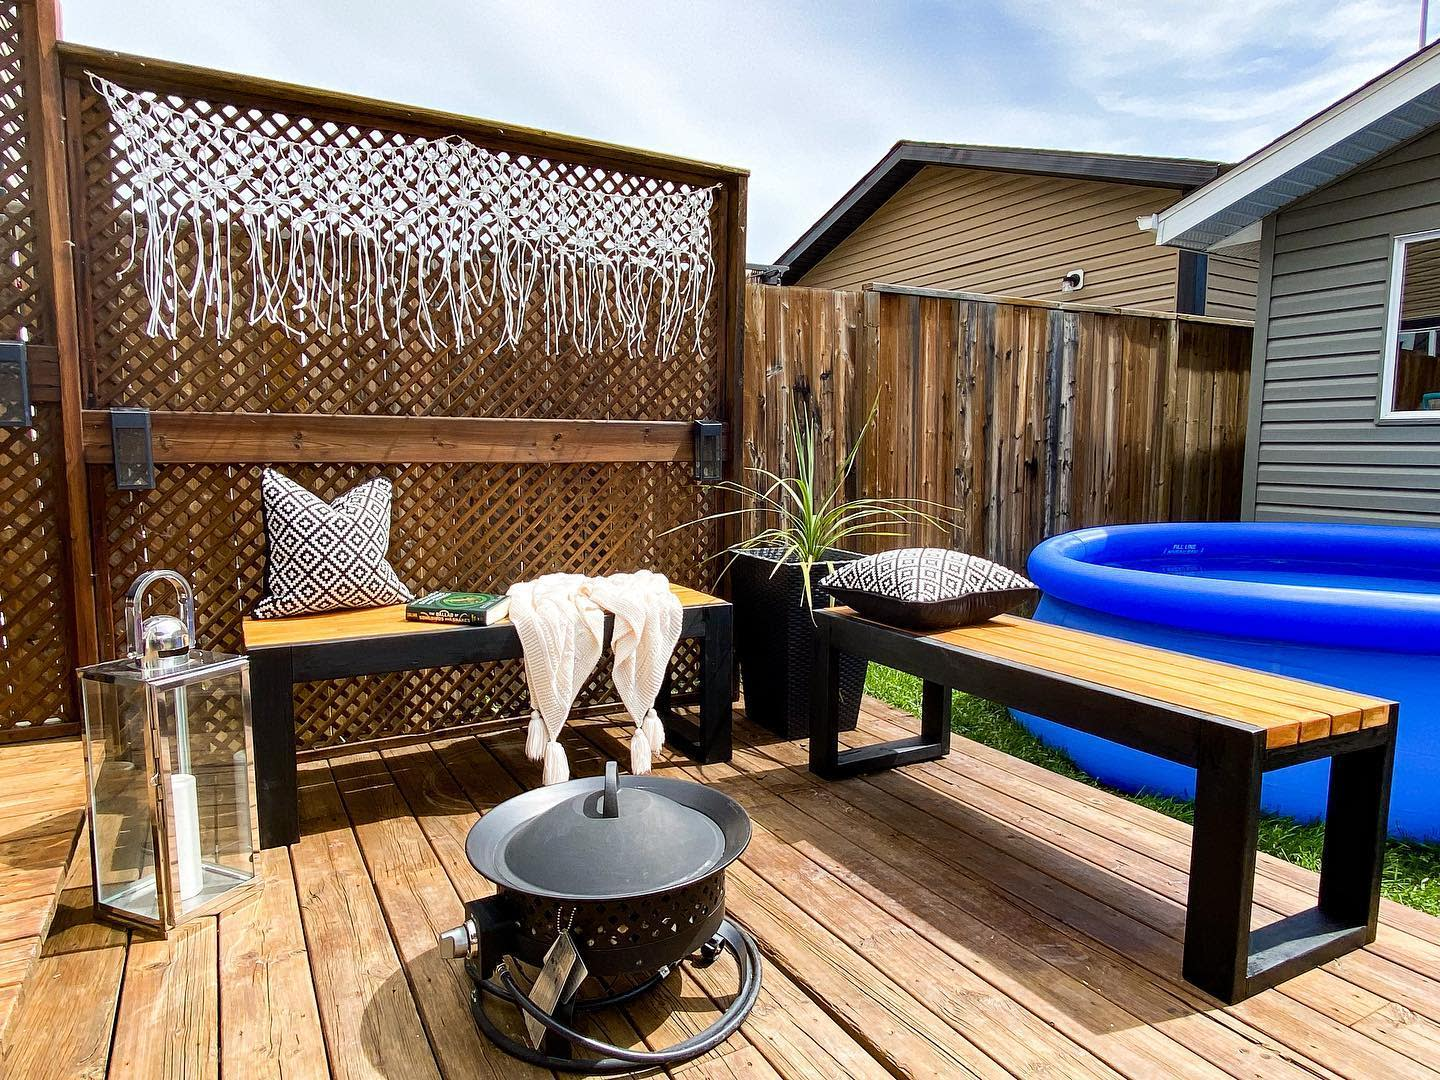 Pool Backyard Ideas on a Budget -this_crowes_nest